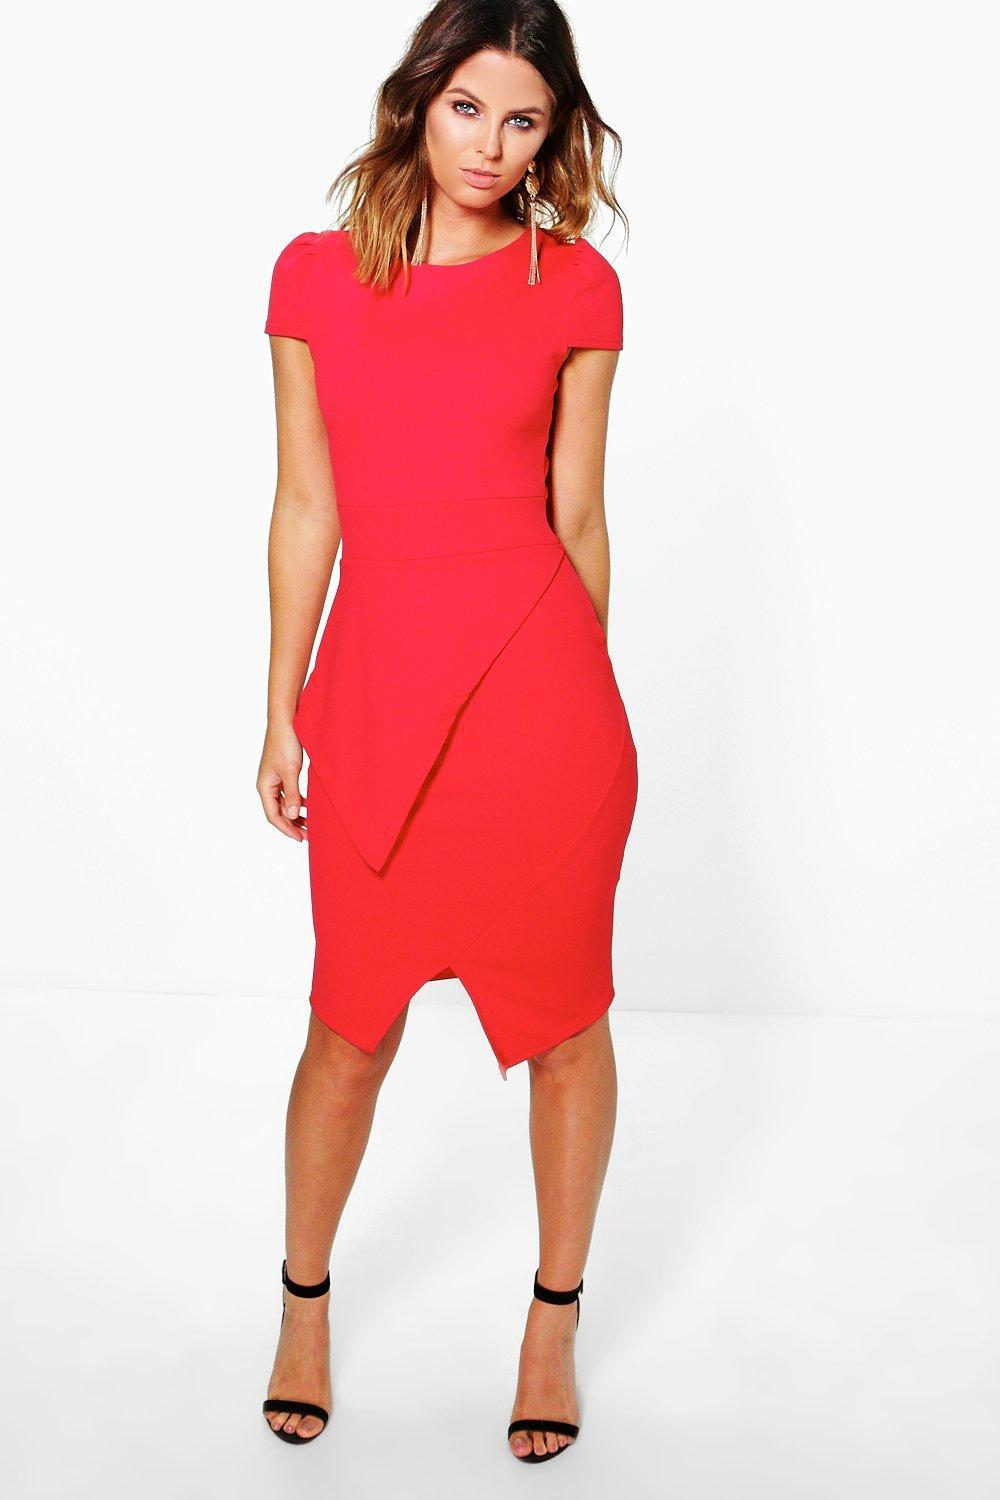 Wrap Skirt Bodycon Dress Red - fit: tight; pattern: plain; style: bodycon; predominant colour: true red; occasions: evening; length: on the knee; fibres: polyester/polyamide - stretch; neckline: crew; sleeve length: short sleeve; sleeve style: standard; texture group: jersey - clingy; pattern type: fabric; season: s/s 2016